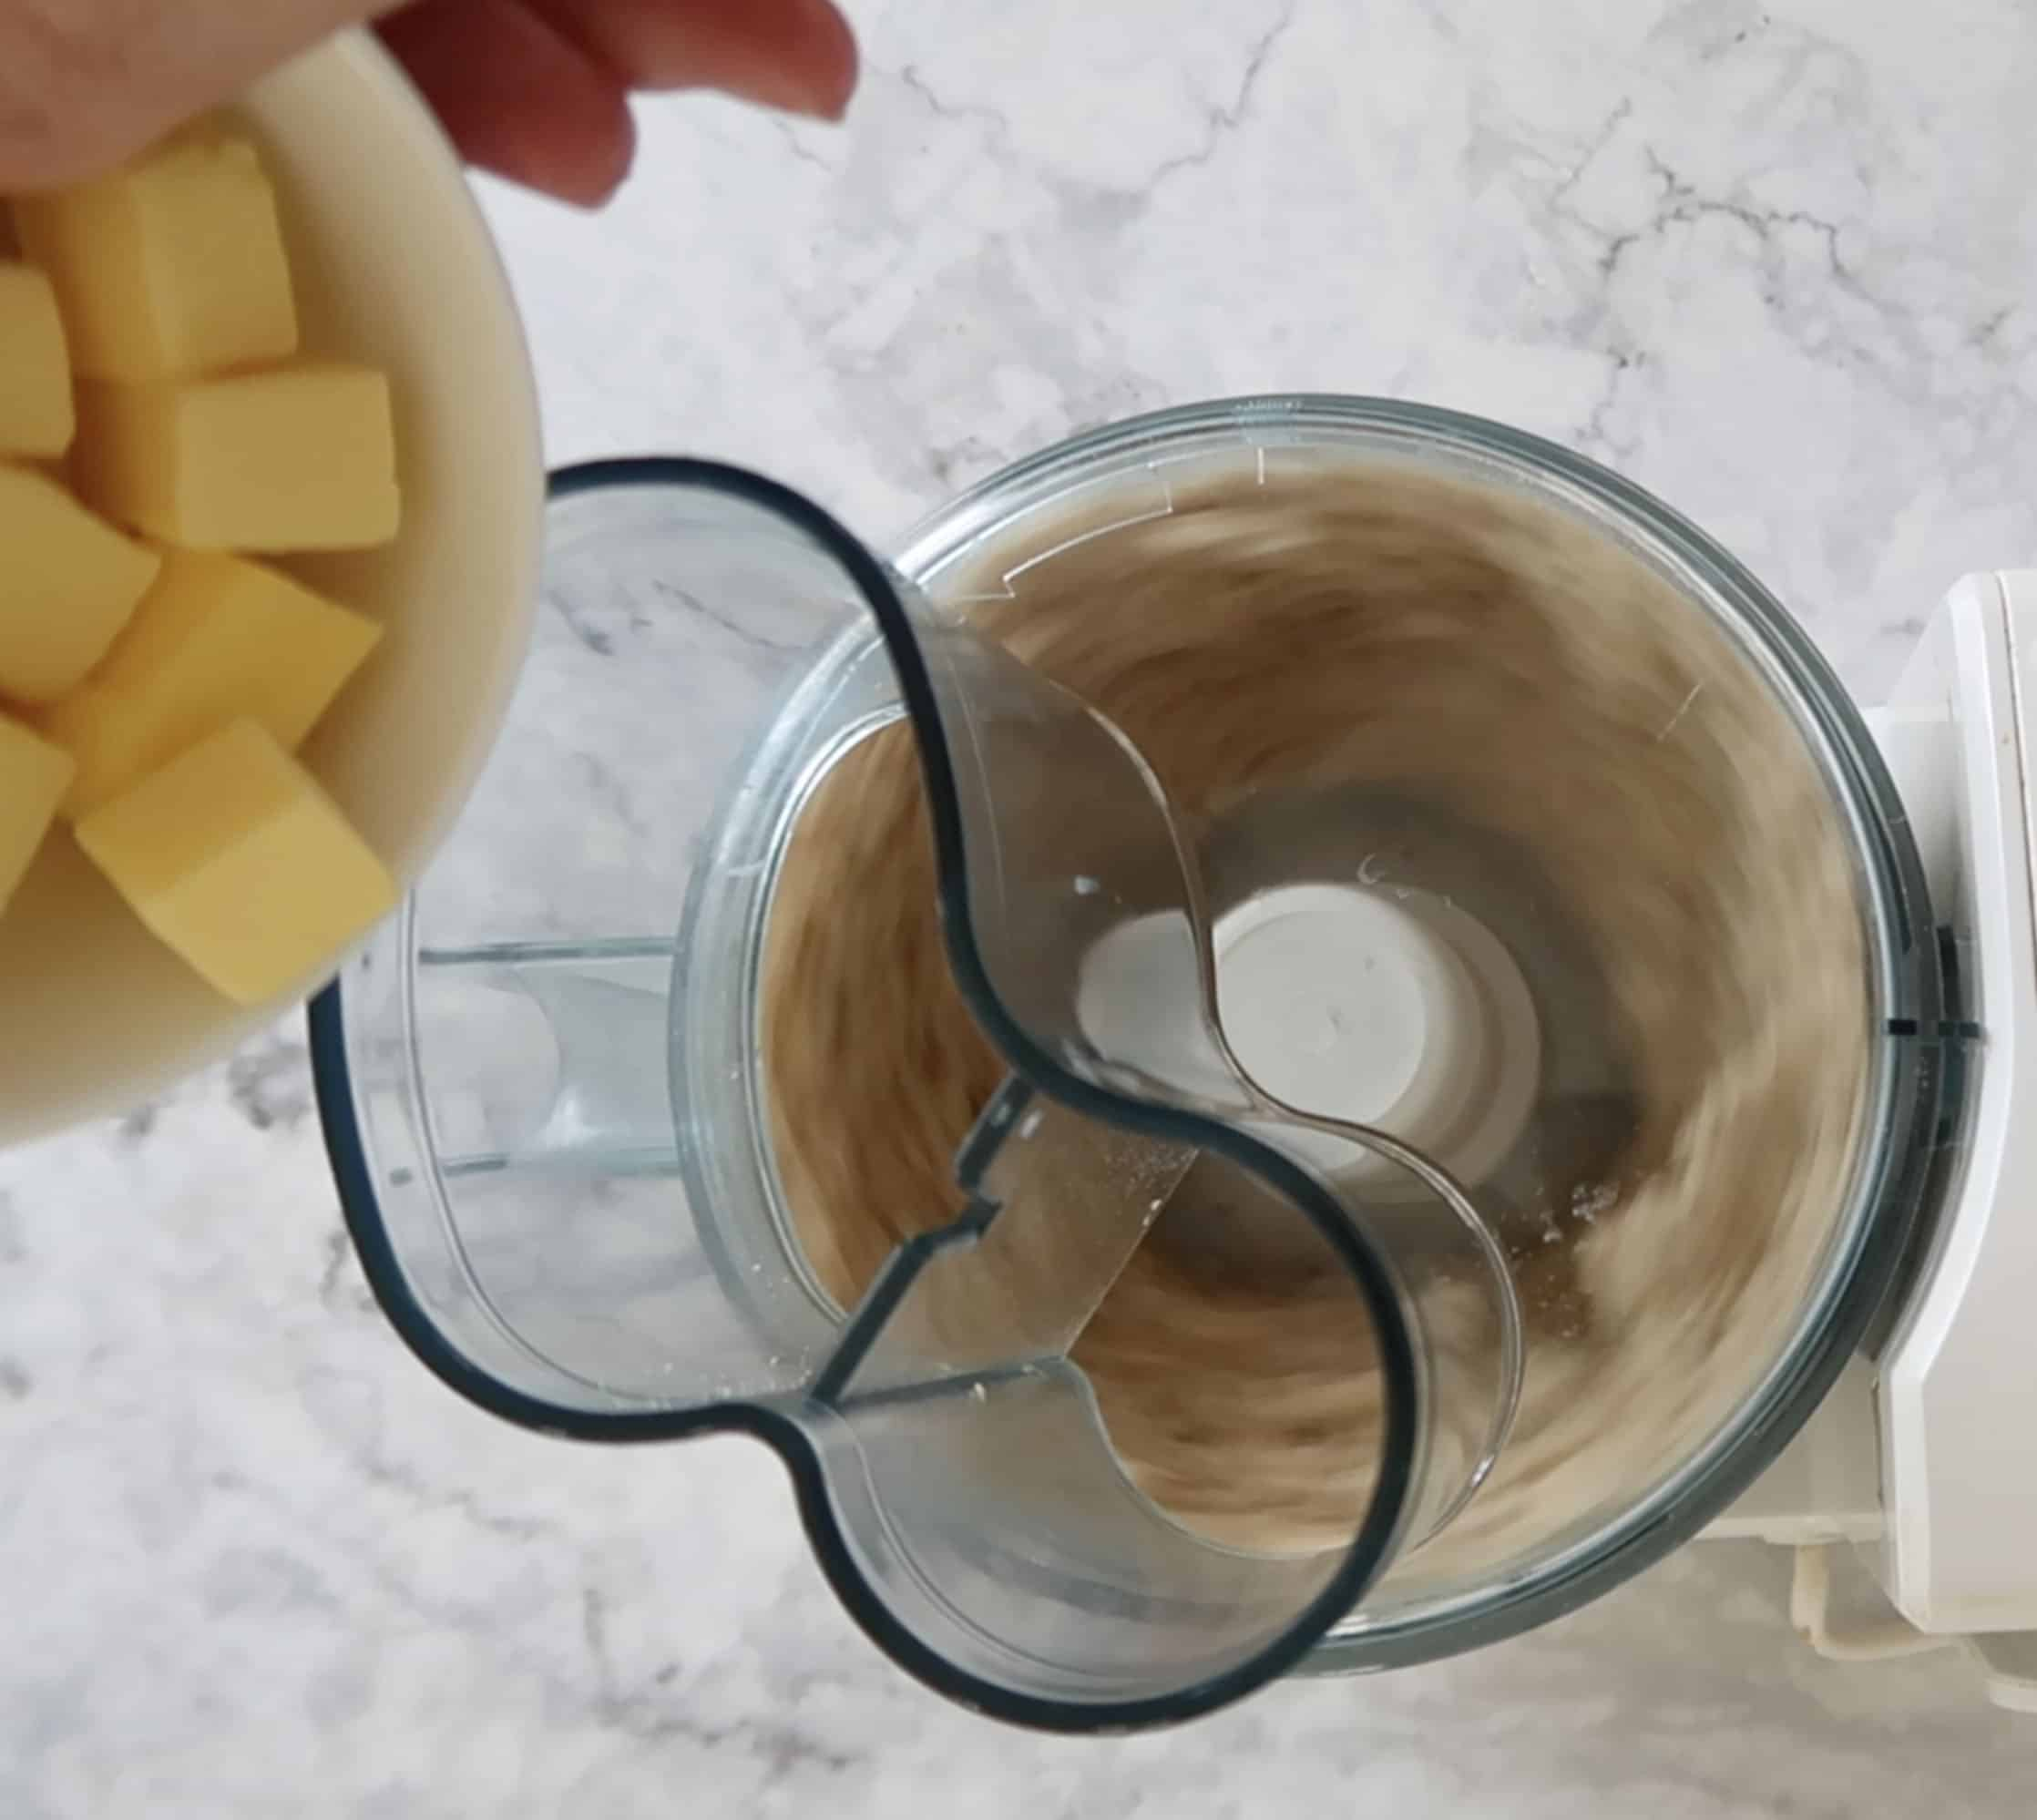 adding butter to a blender to make Anchovy, Cheese and Pine Nut Biscuits